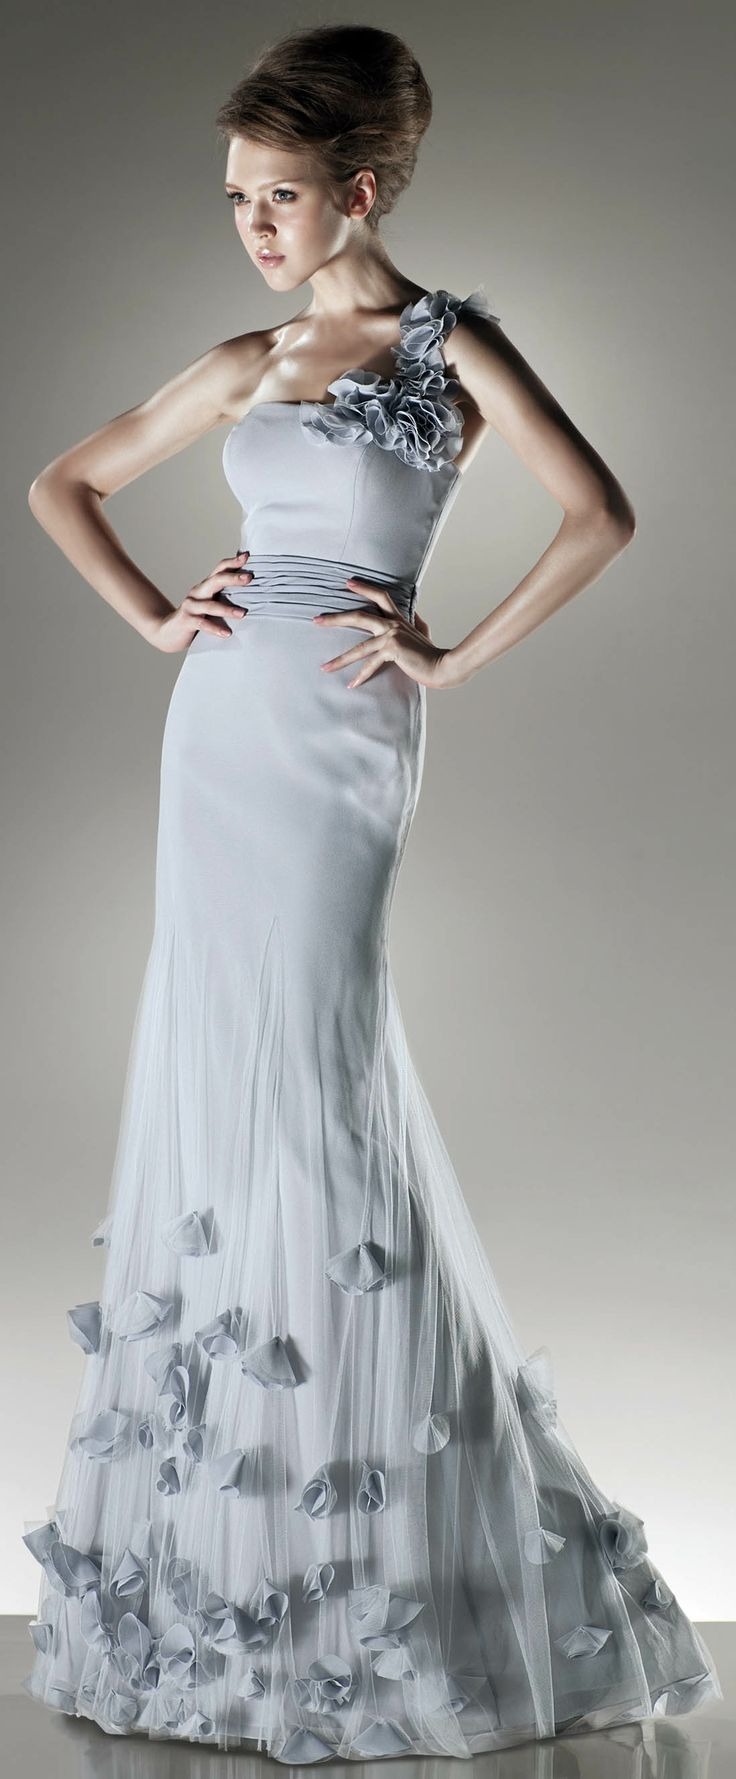 1667 best Dresses & Shoes images on Pinterest | Bridal gowns ...